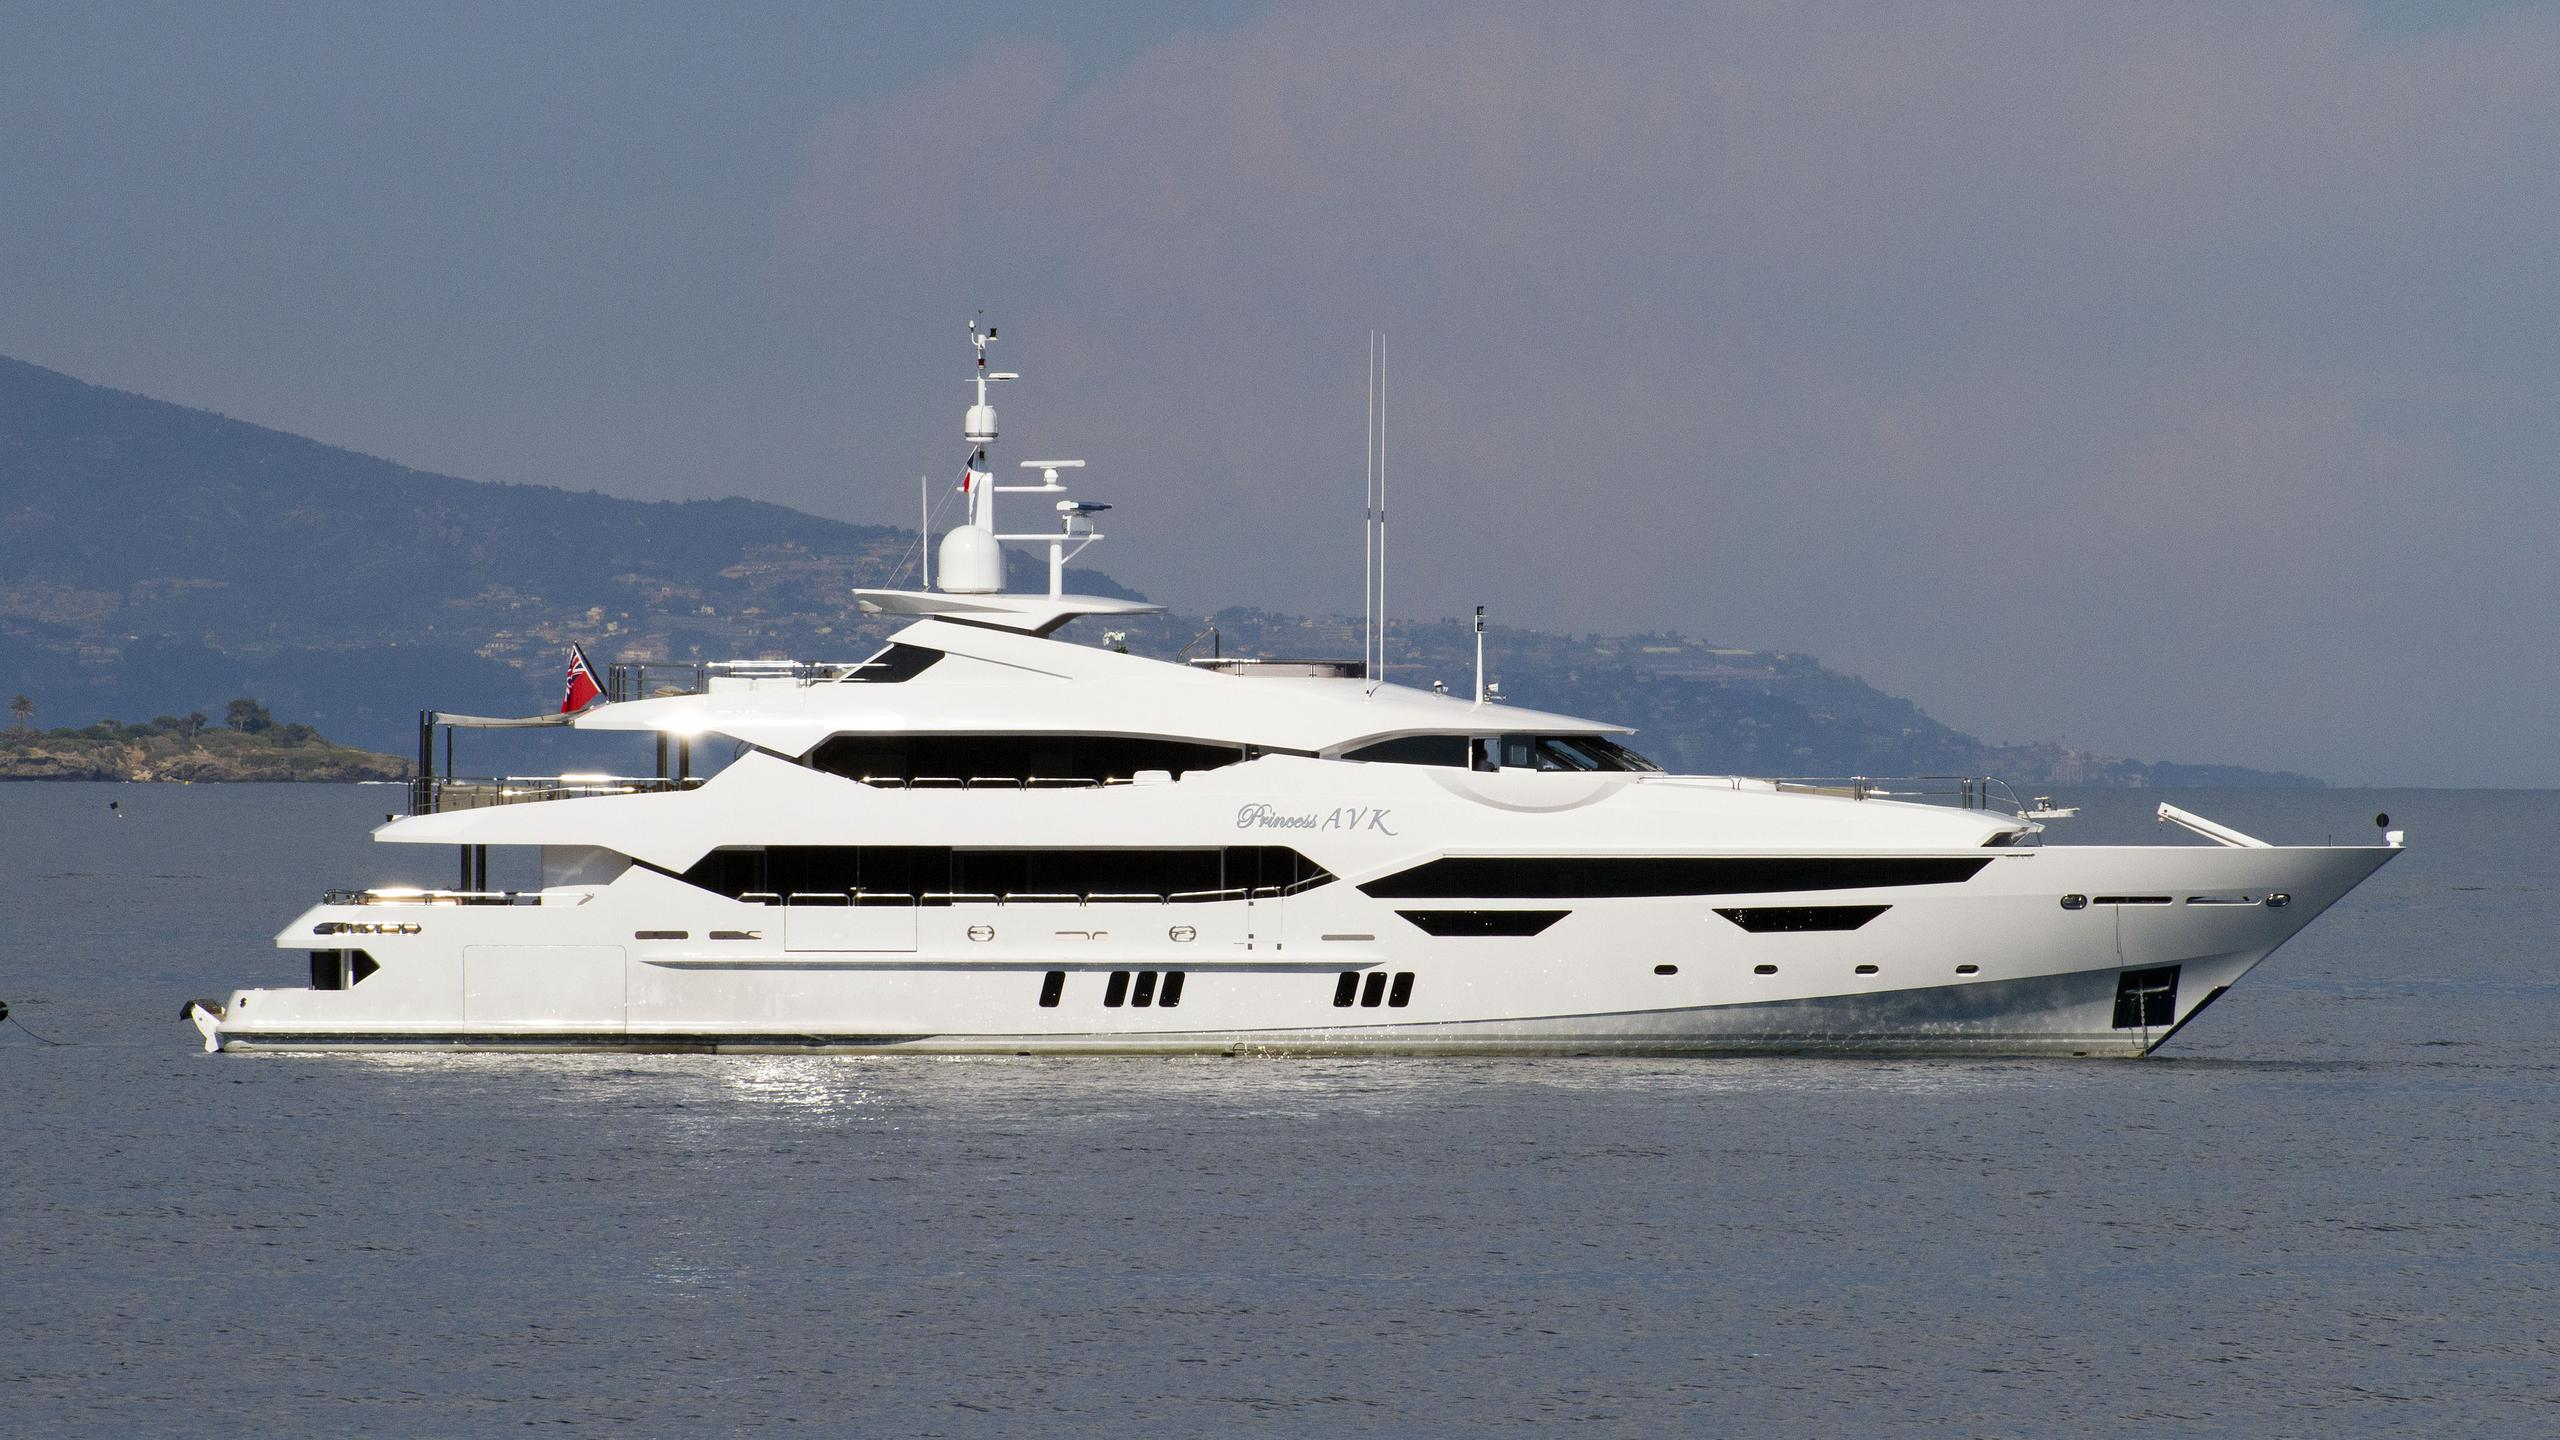 princess-avk-motor-yacht-sunseeker-2016-47m-profile